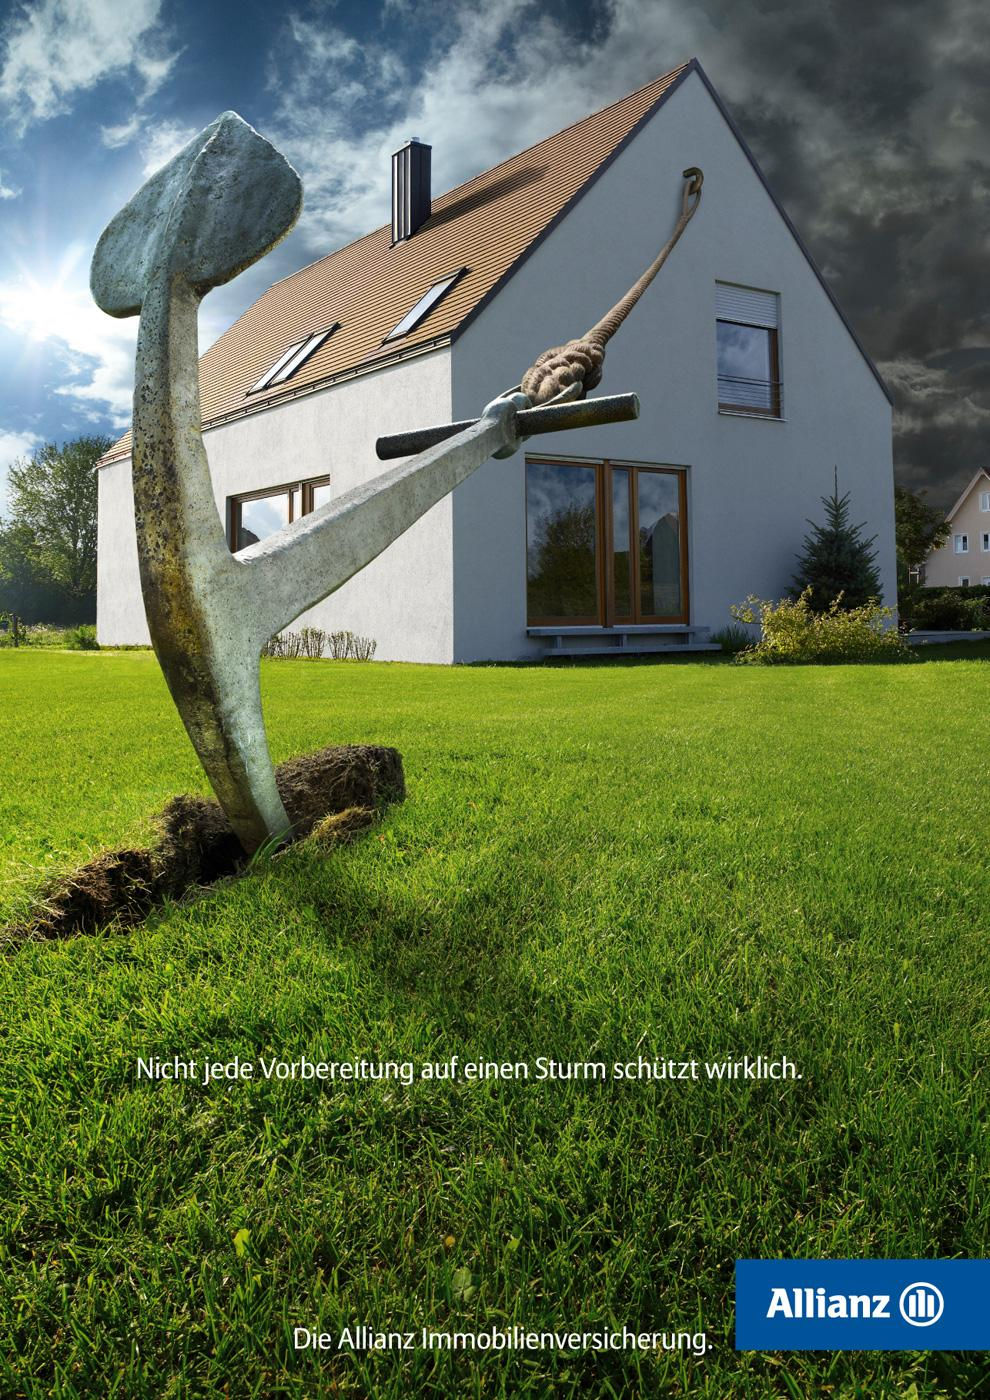 Allianz Print Advert By Atletico Anchor Ads Of The World